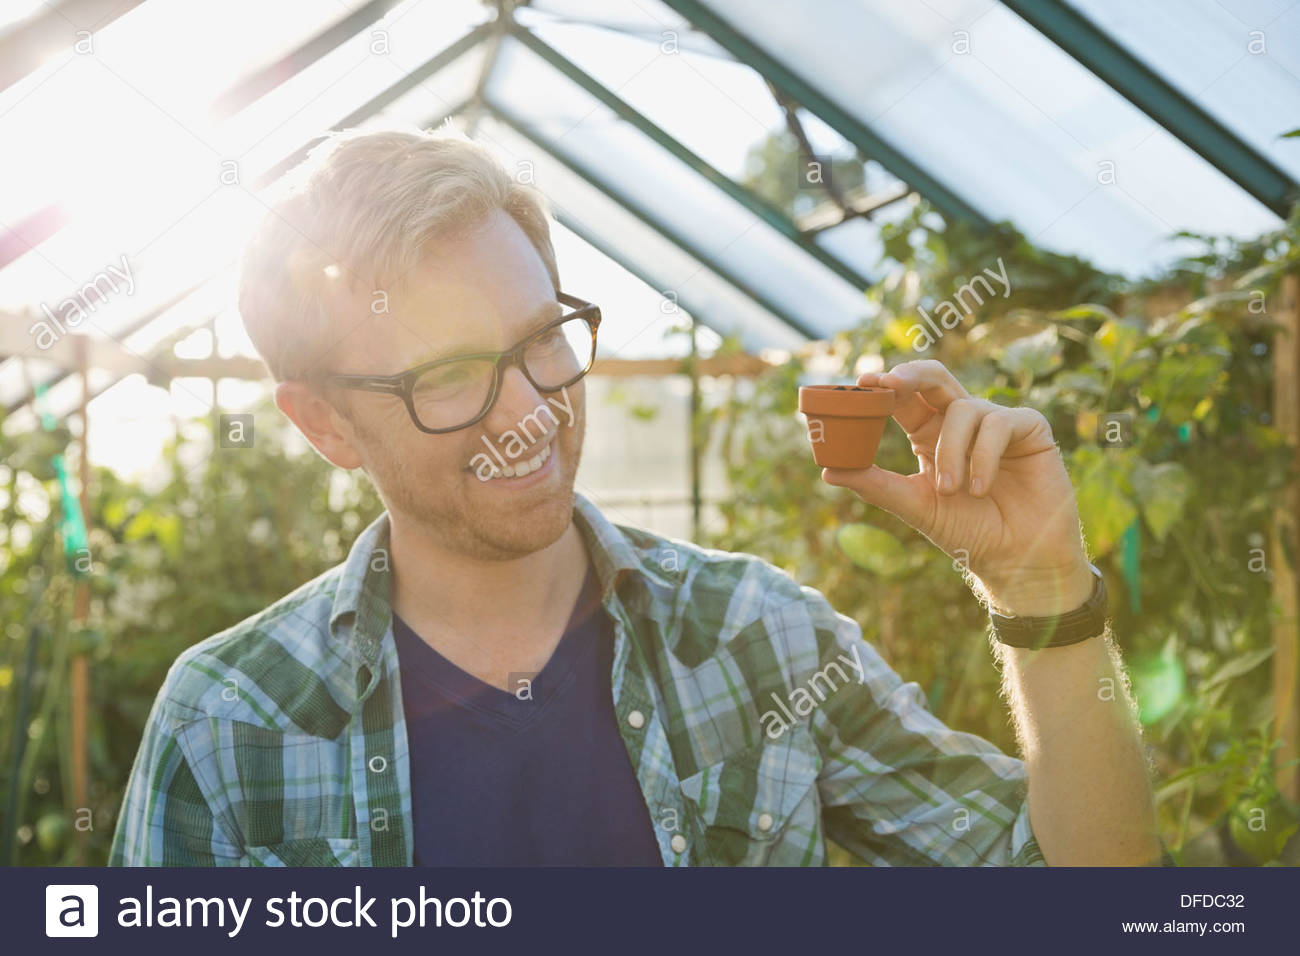 Smiling man holding tiny pot in community greenhouse - Stock Image